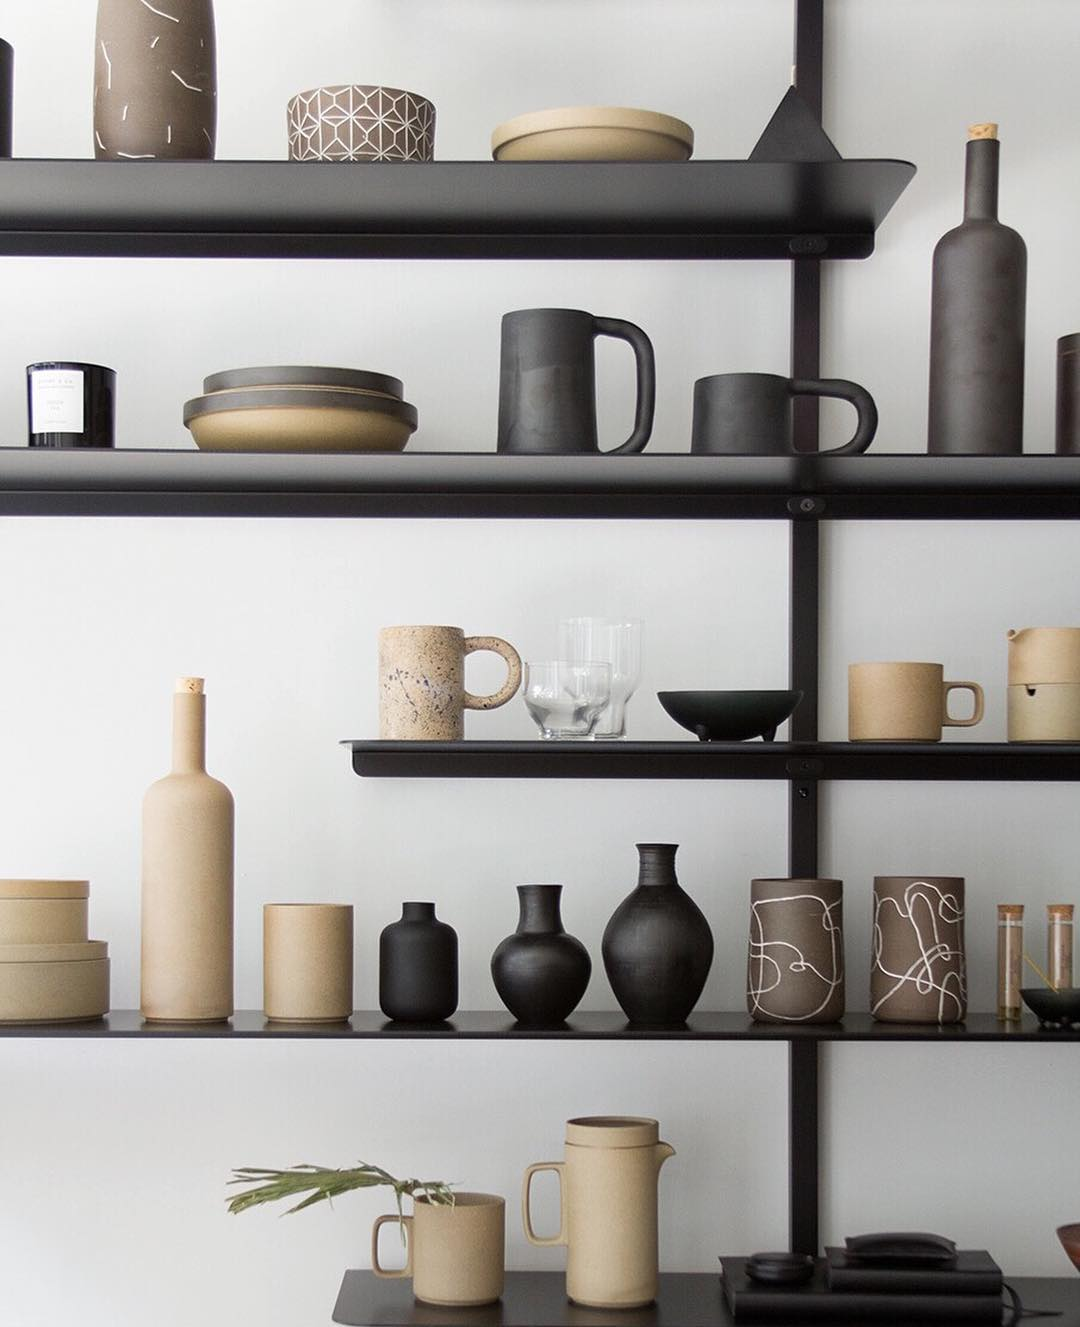 Ceramics Collection Display On Wall Mounted Shelves // Anne